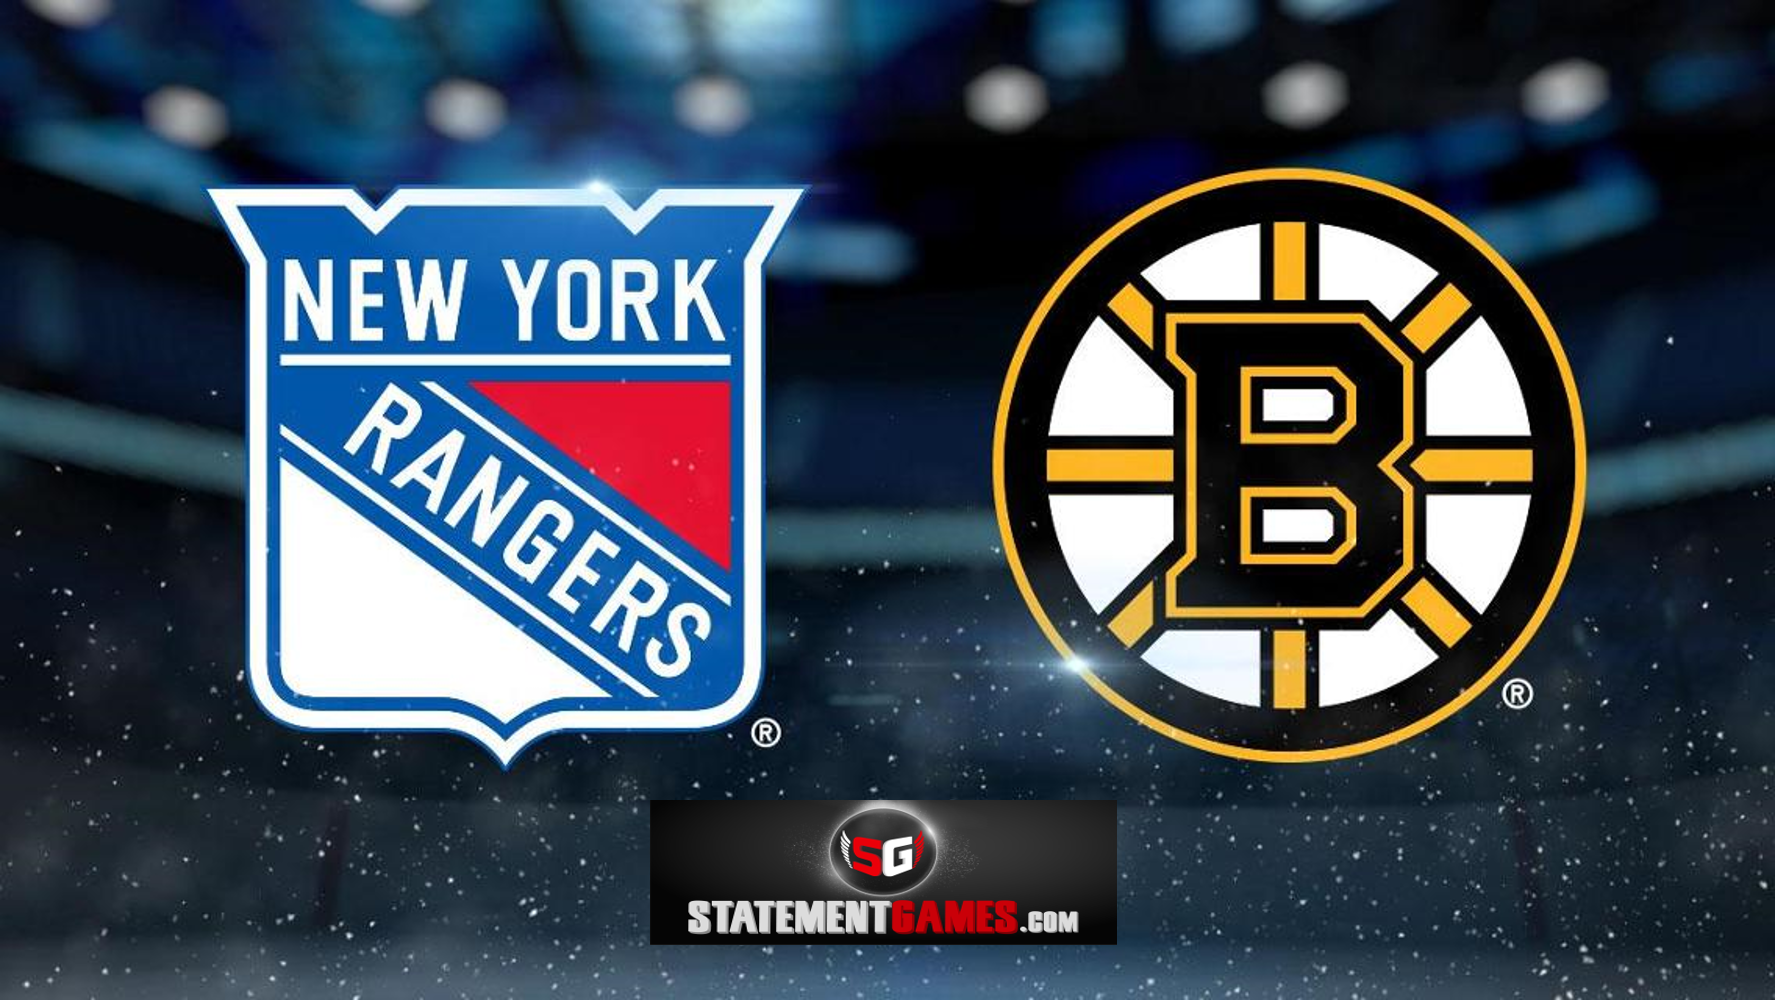 Boston Bruins Vs New York Rangers – NHL Game Day PREVIEW: 02.10.2021